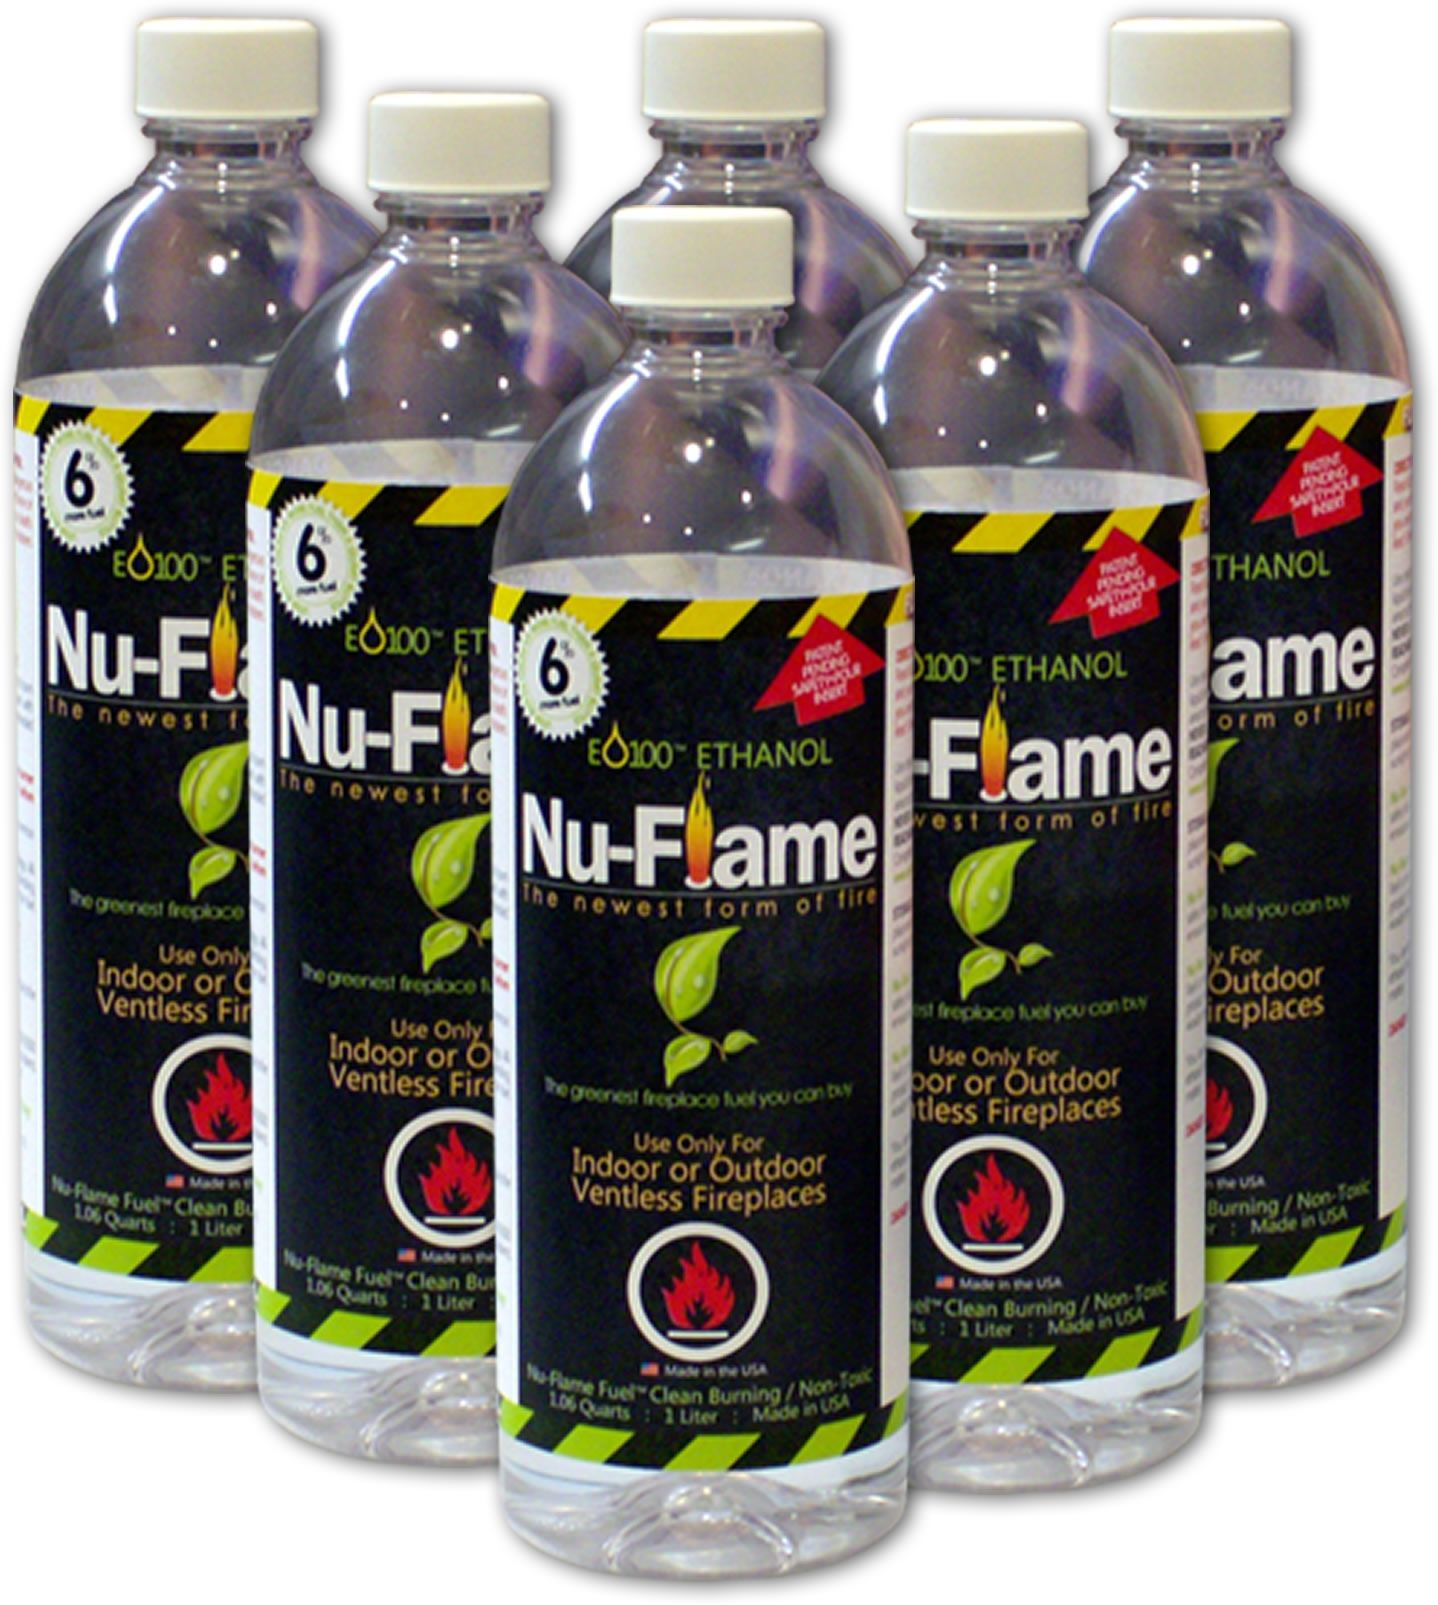 made in from 100 waste right here in the usa nu flame liquid